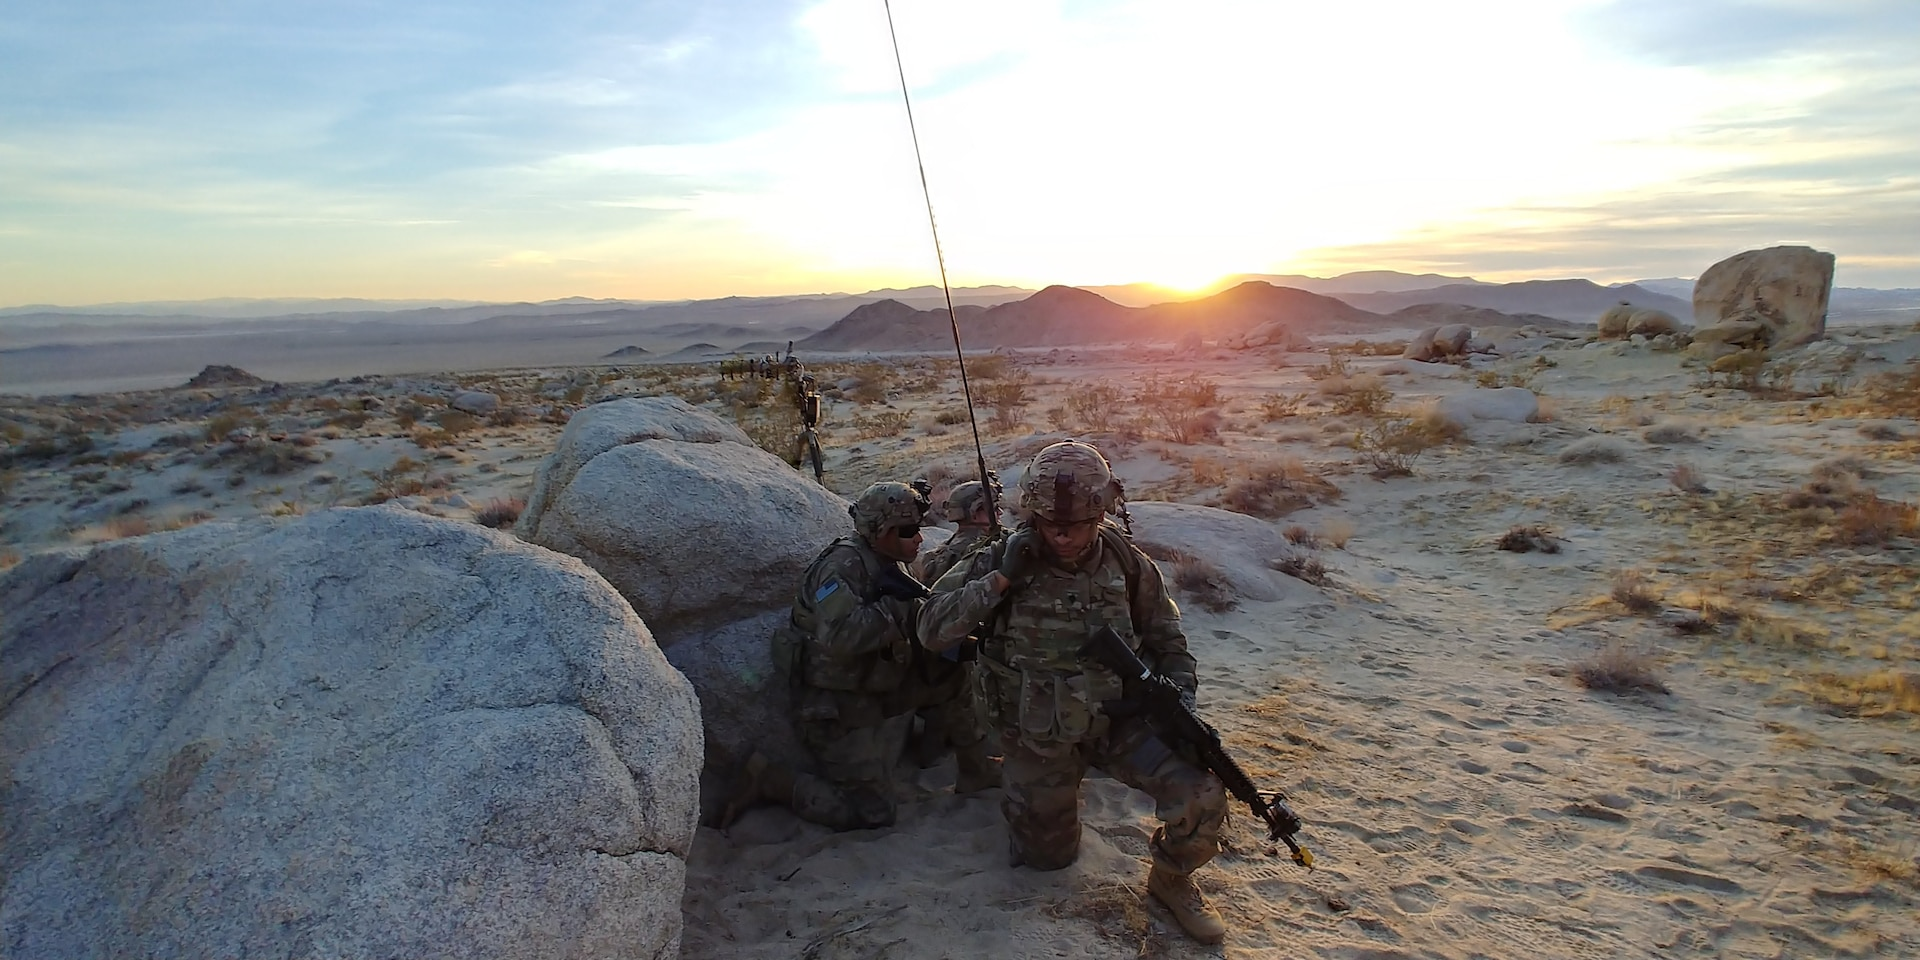 Soldiers from Expeditionary Cyber Support Detachment, 782nd Military Intelligence Battalion (Cyber), provide offensive operations in support of 1st Stryker Brigade Combat Team, 4th Infantry Division, during seizure of town at National Training Center, Rotation 18-03, Fort Irwin, California, January 18, 2018 (U.S. Army/Adam Schinder)